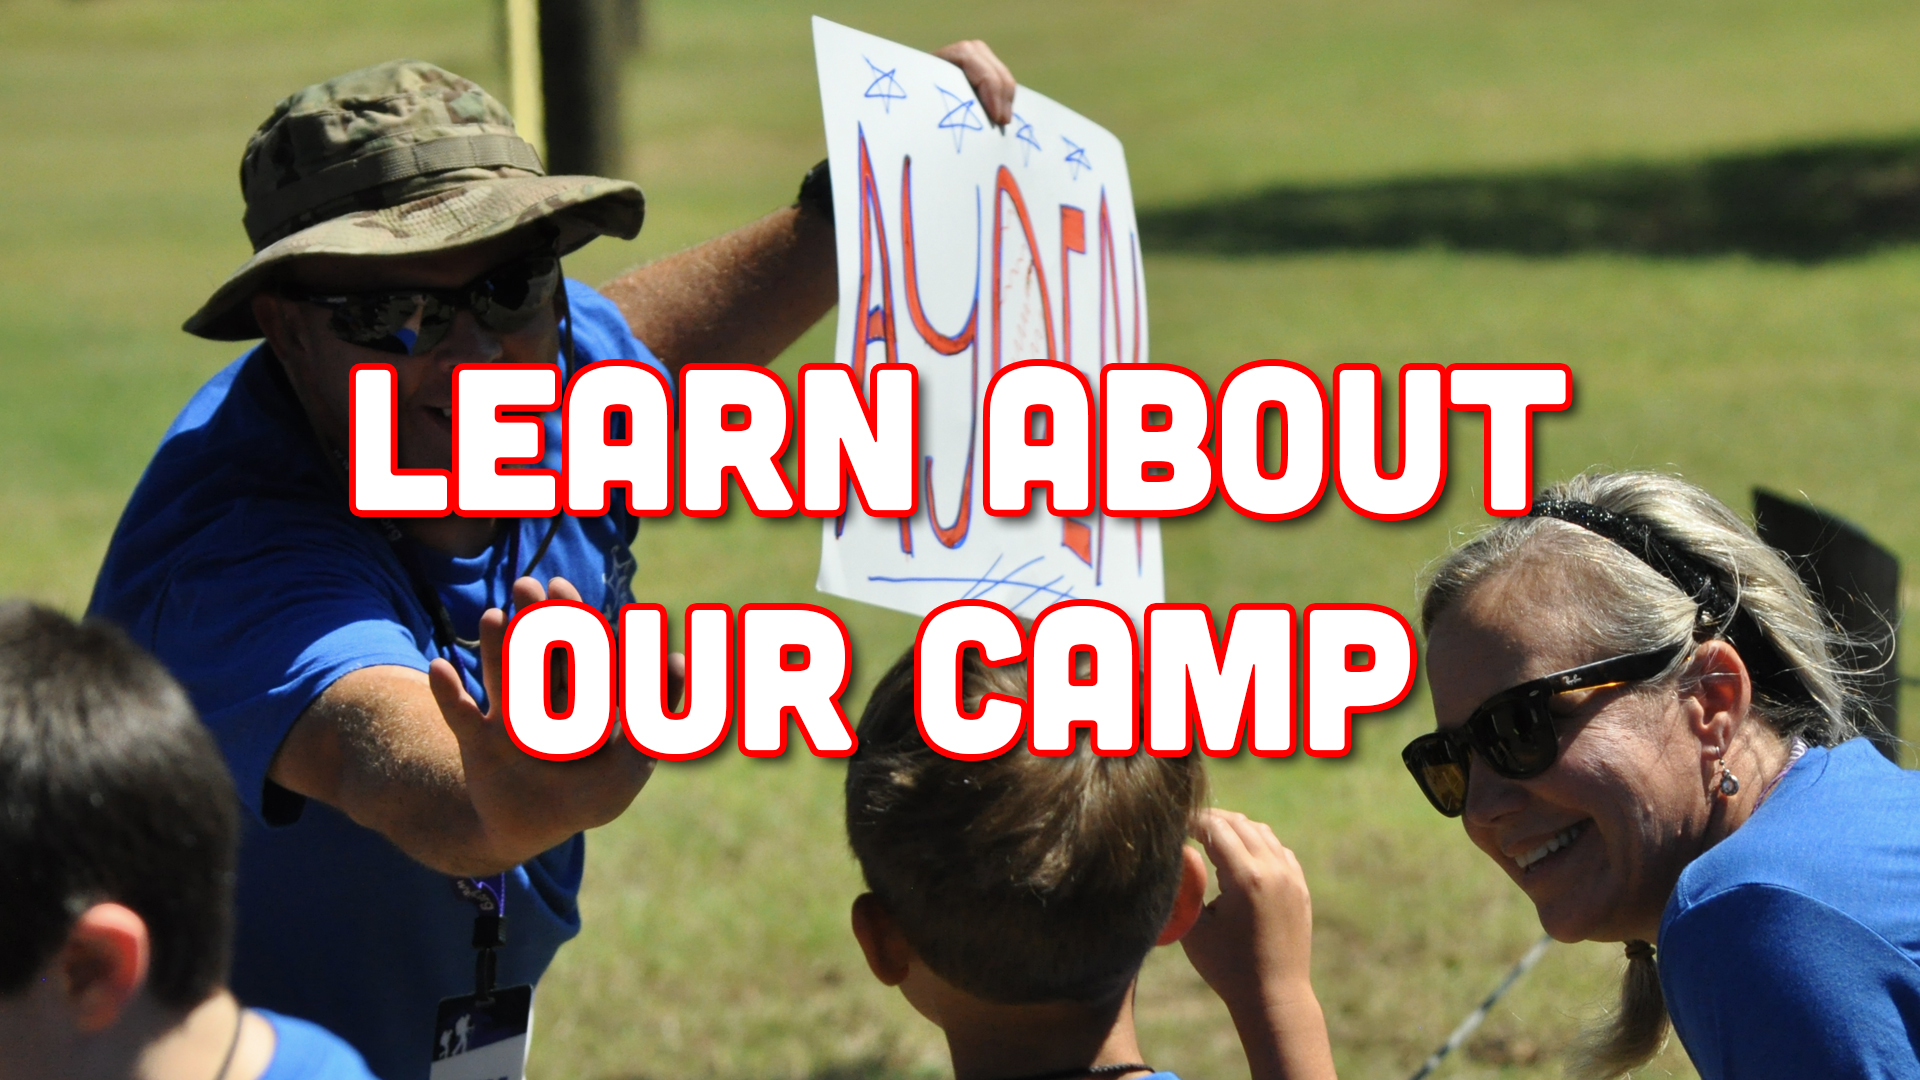 Learn About Our Camp